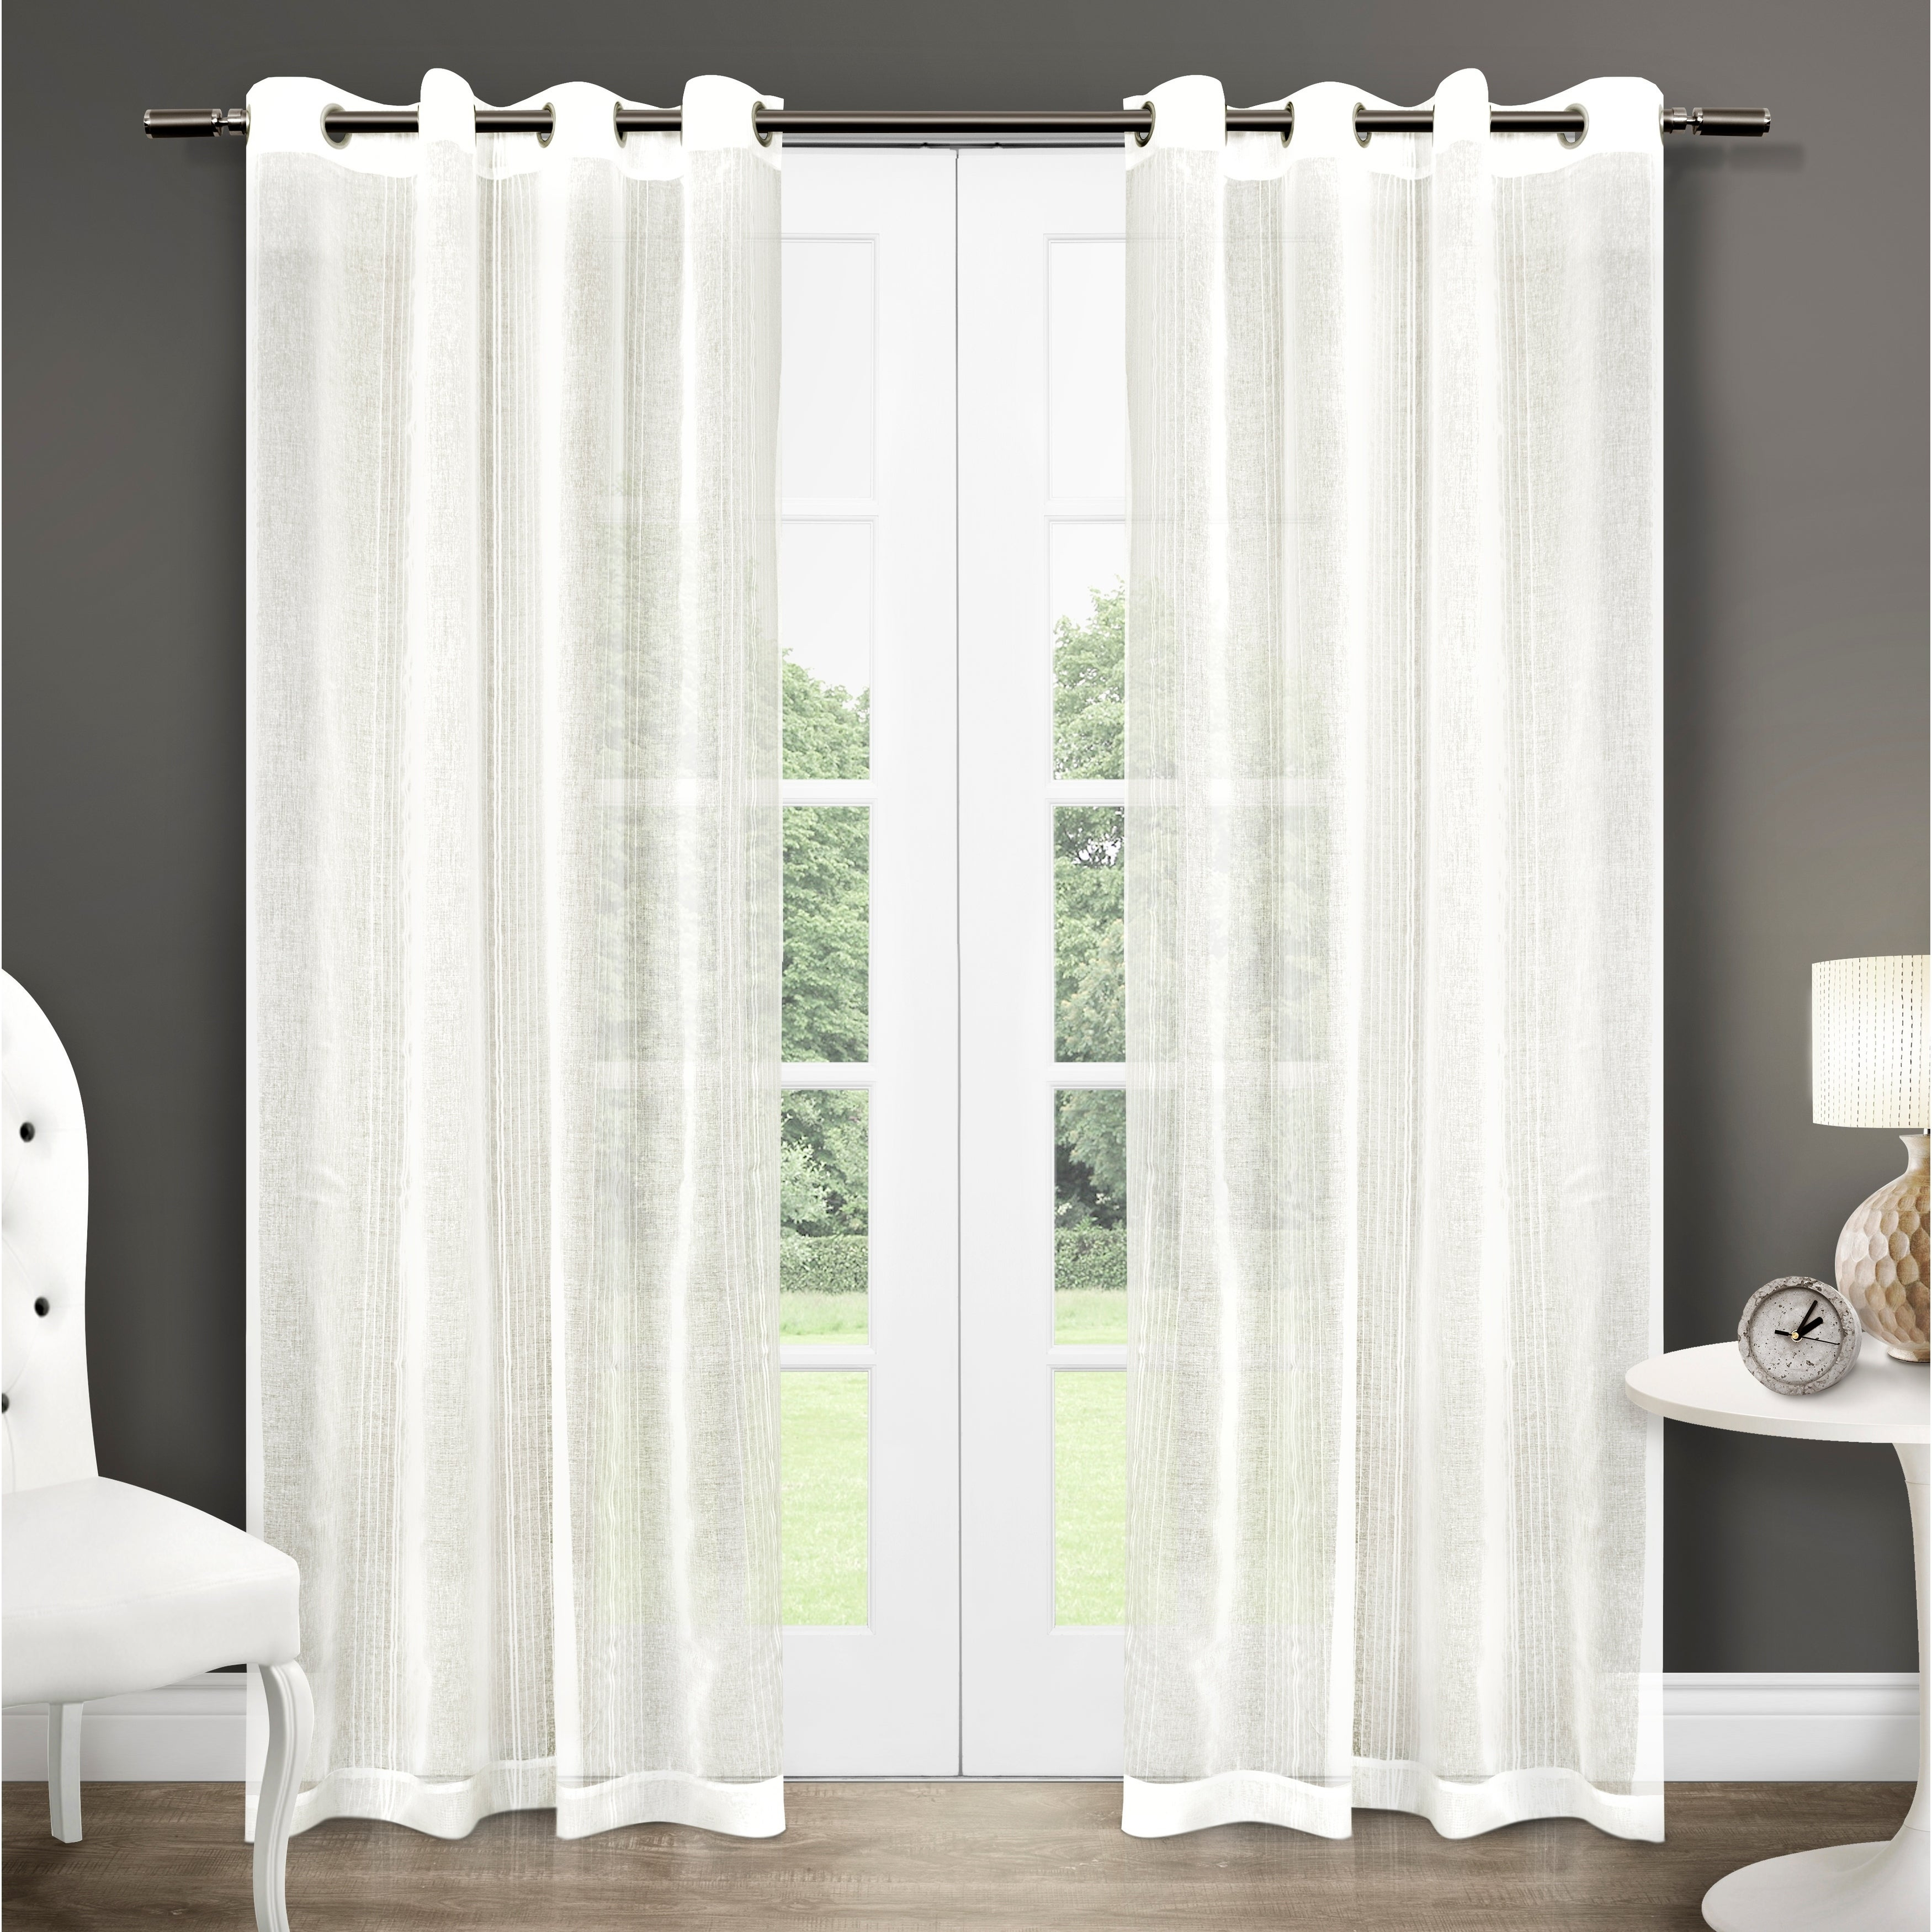 Ati Home Sabrina Sheer Window Curtain Panel Pair With Grommet Top for Luxury Collection Venetian Sheer Curtain Panel Pairs (Image 3 of 20)